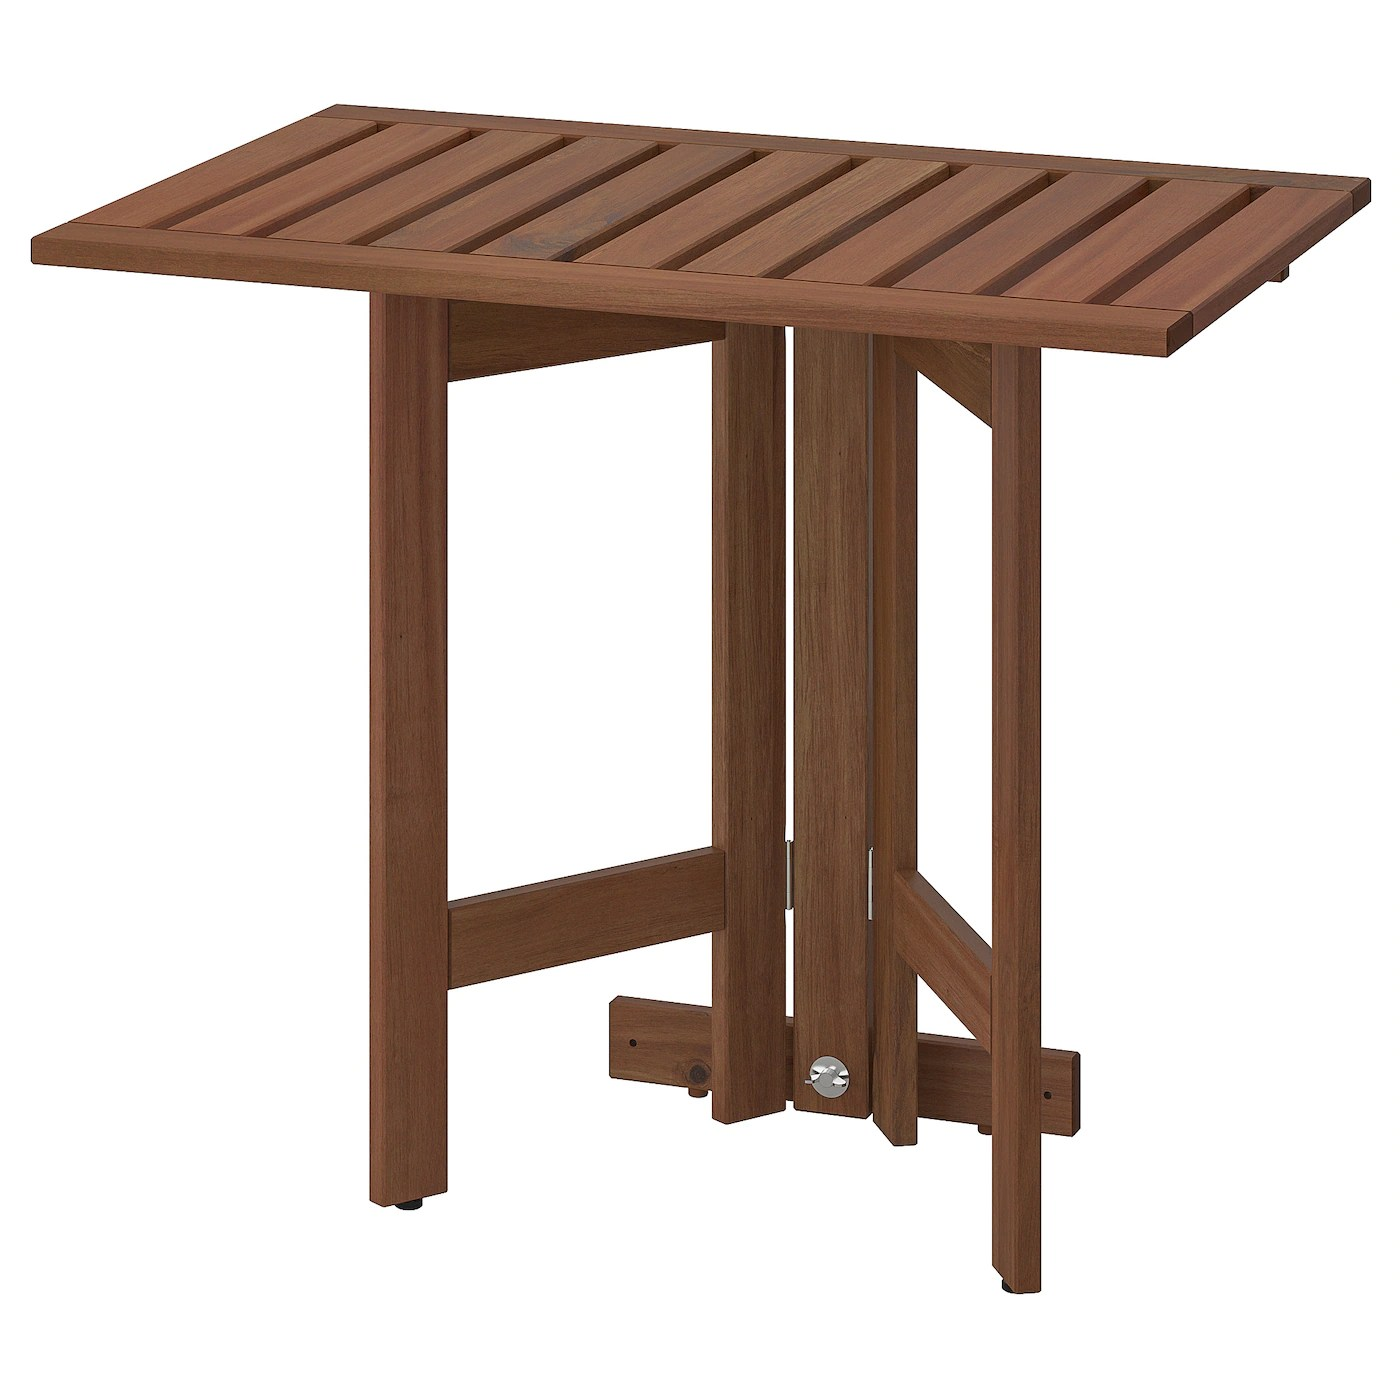 ÄpplarÖ Gateleg Table For Wall Outdoor Brown Stained Ikea - Table Pliable Ikea